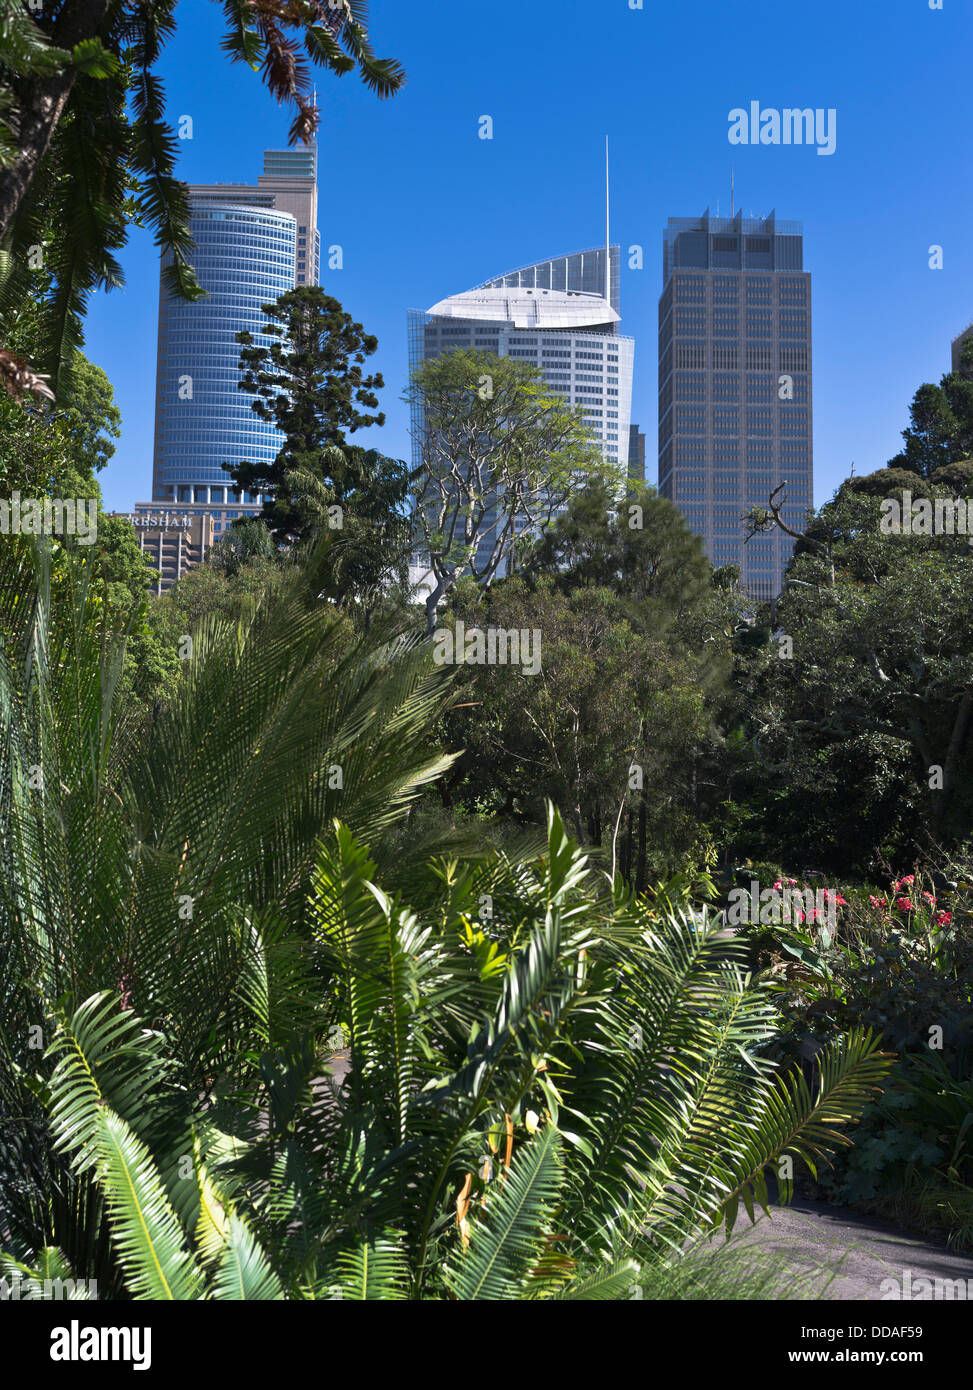 Dh Royal Botanic Gardens SYDNEY AUSTRALIA Tropical Park Central Business  District City Skyline Buildings